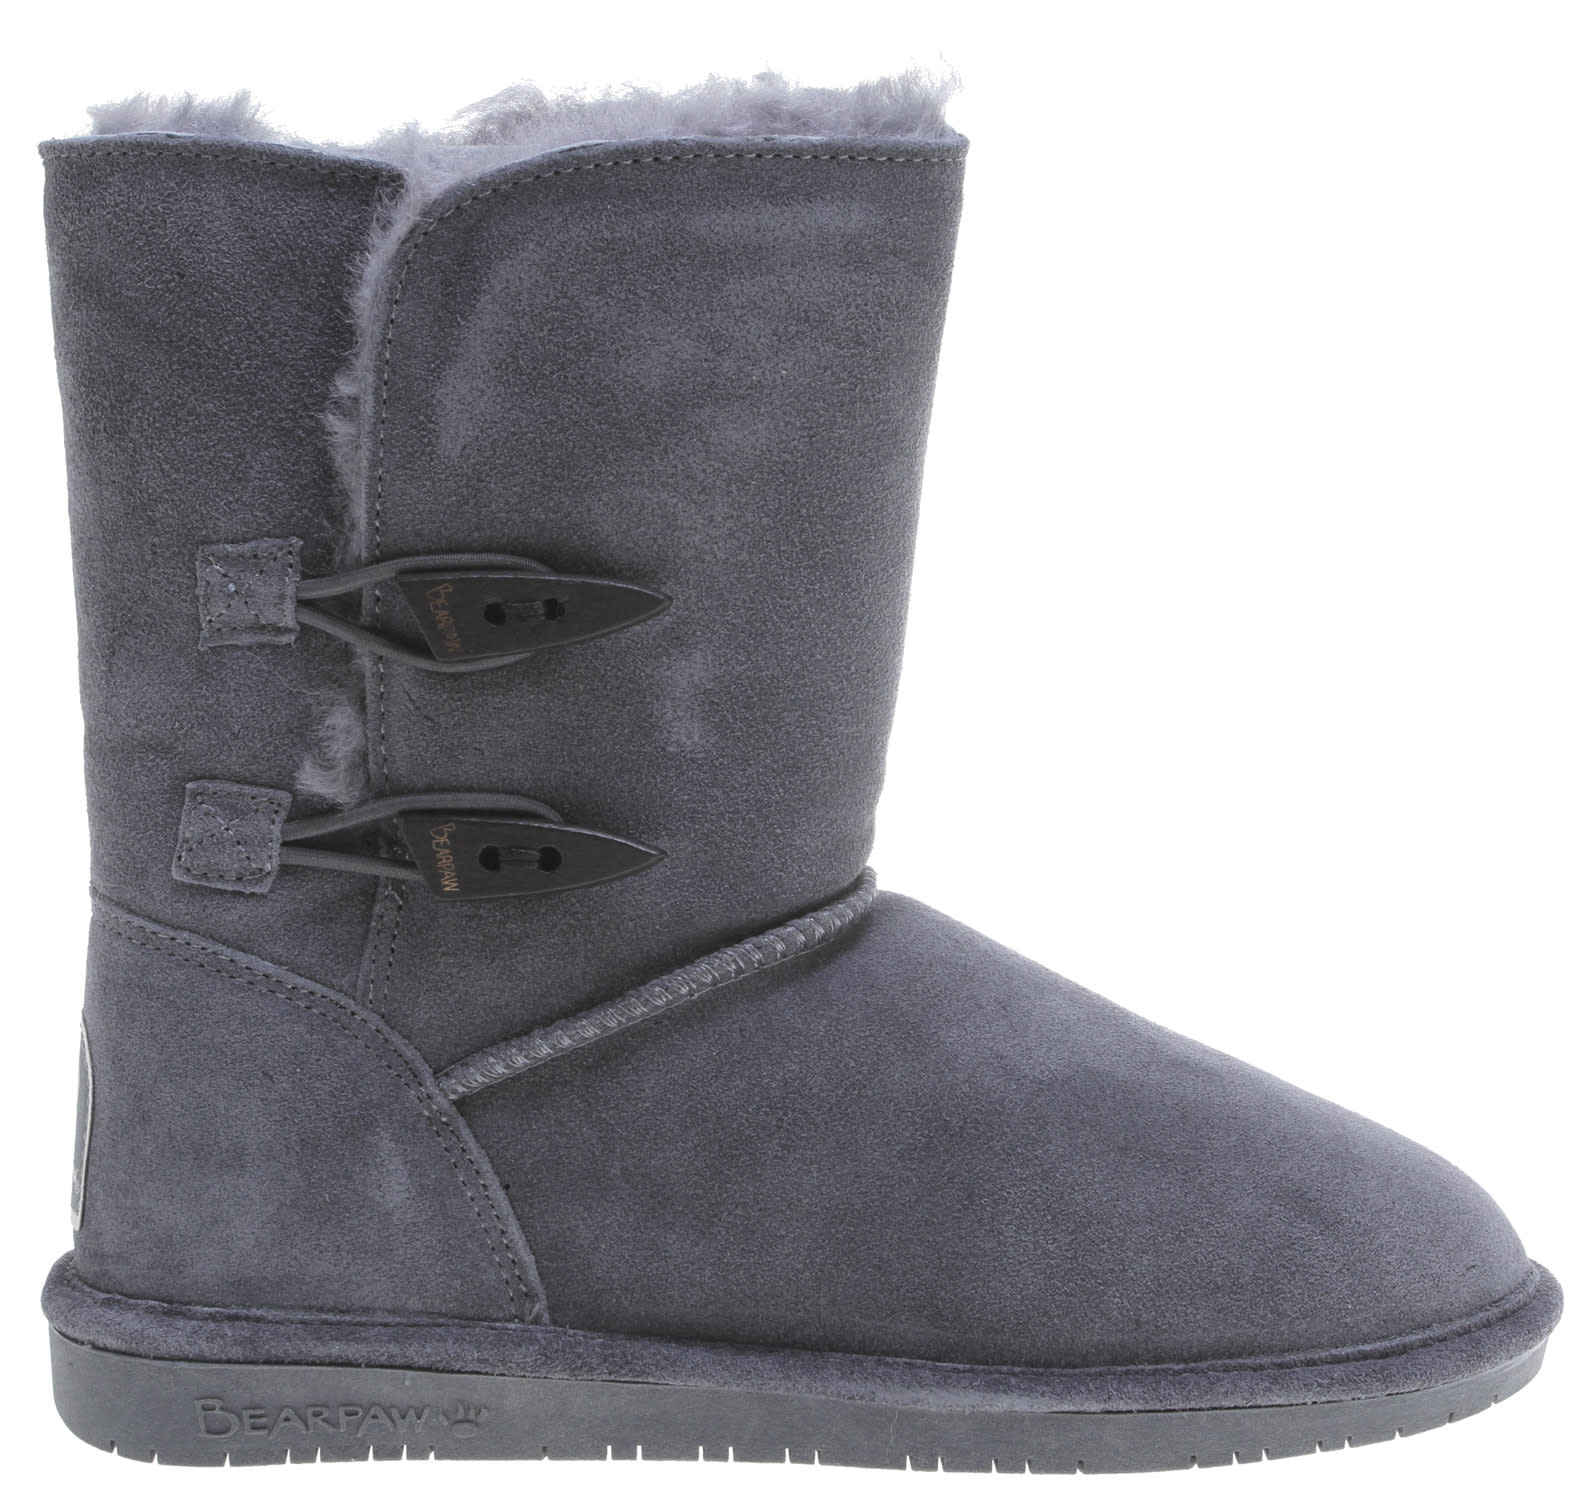 Bearpaw Shoes Reviews